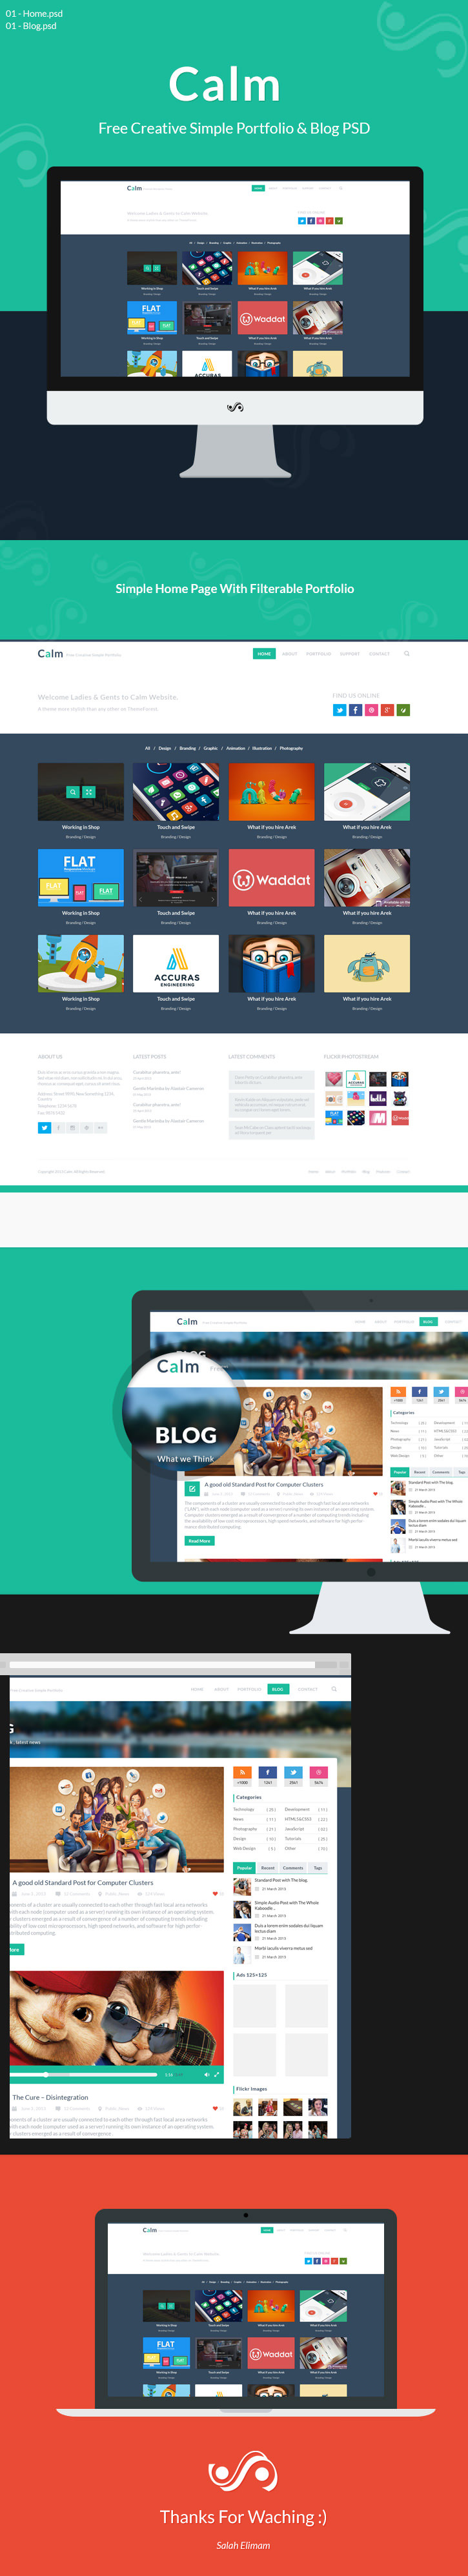 Calm Free Creative Simple Portfolio & Blog PSD www, windows 8 psd, Website Template, Website Layout, Website, webpage, Web Template, Web Resources, web page, Web Layout, Web Interface, Web Elements, Web Design, Web, Video Player, User Interface, unique, UI elements, UI, Template, Stylish, Simple, Resources, Quality, Psd Templates, PSD Sources, psd resources, PSD images, psd free download, psd free, PSD file, psd download, PSD, Portfolio Website, Portfolio, Photoshop, original, organized, new, Modern, Layered PSDs, Layered PSD, Interface, Homepage, hi-res, HD, Graphics, Fresh, Freebies, Free Resources, Free PSD, free download, Free, flat website, Flat Design, Flat, Elements, download psd, download free psd, Download, detailed, Design, Creative, Clean, blog page, Blog, Adobe Photoshop,